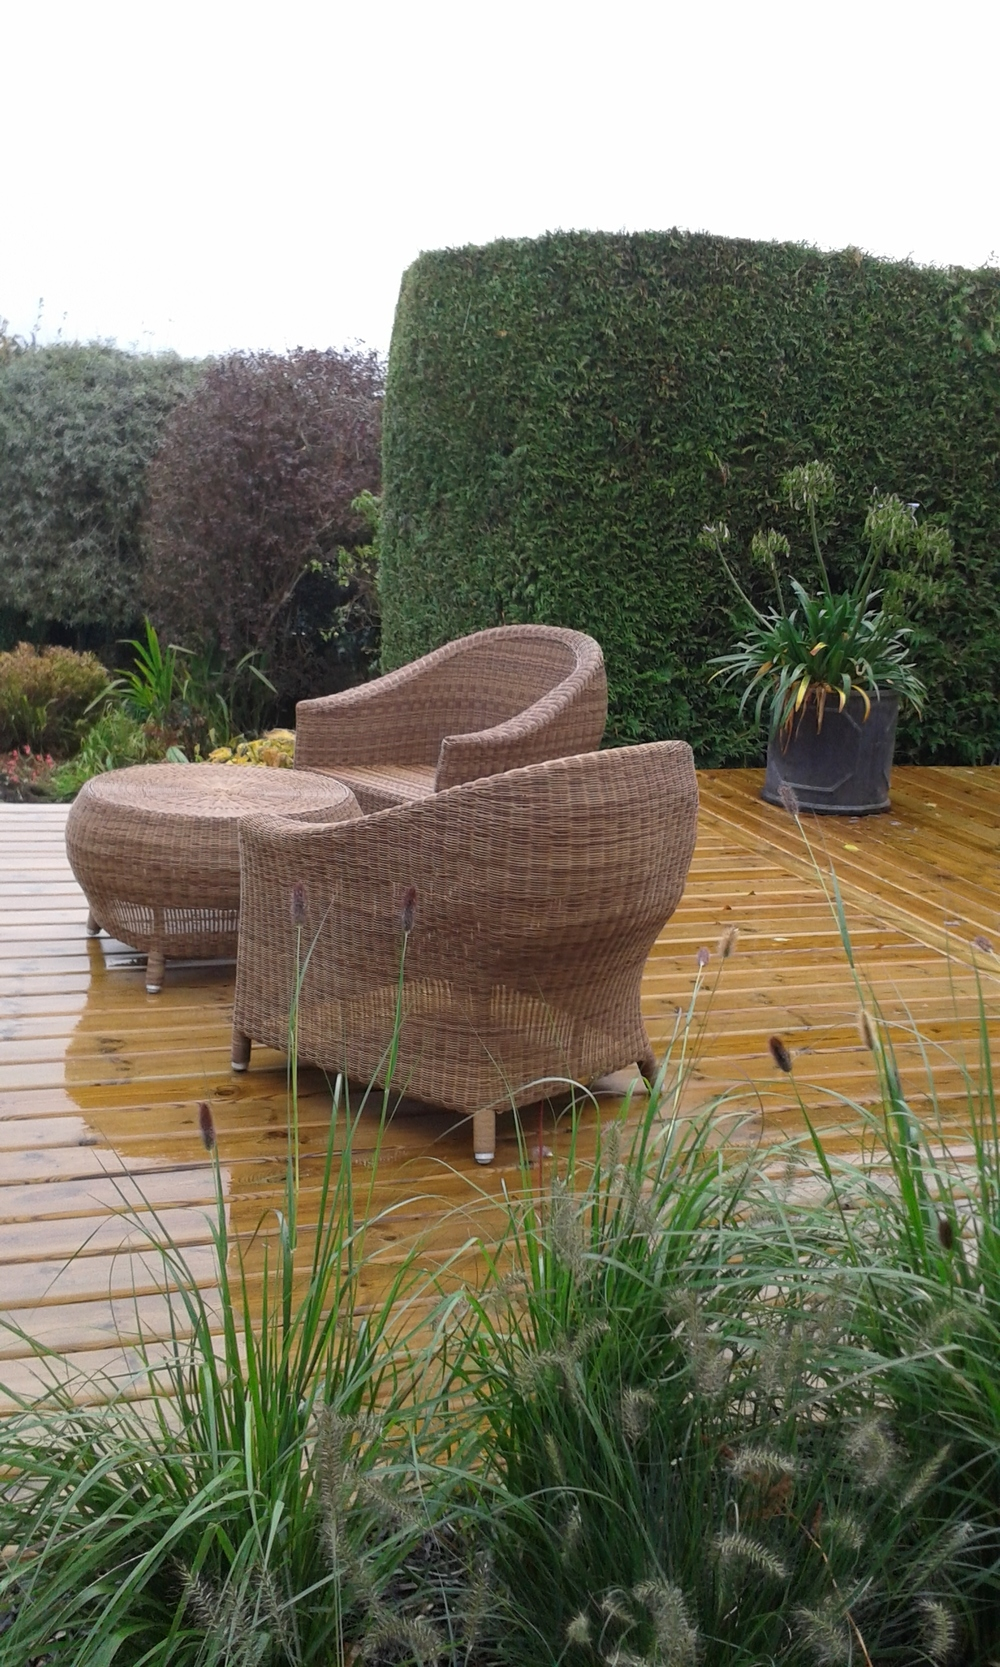 Smart hardwood decking and contemporary furniture offer a welcome outside and a tightly clipped conifer hedge provides  a high degree of privacy.